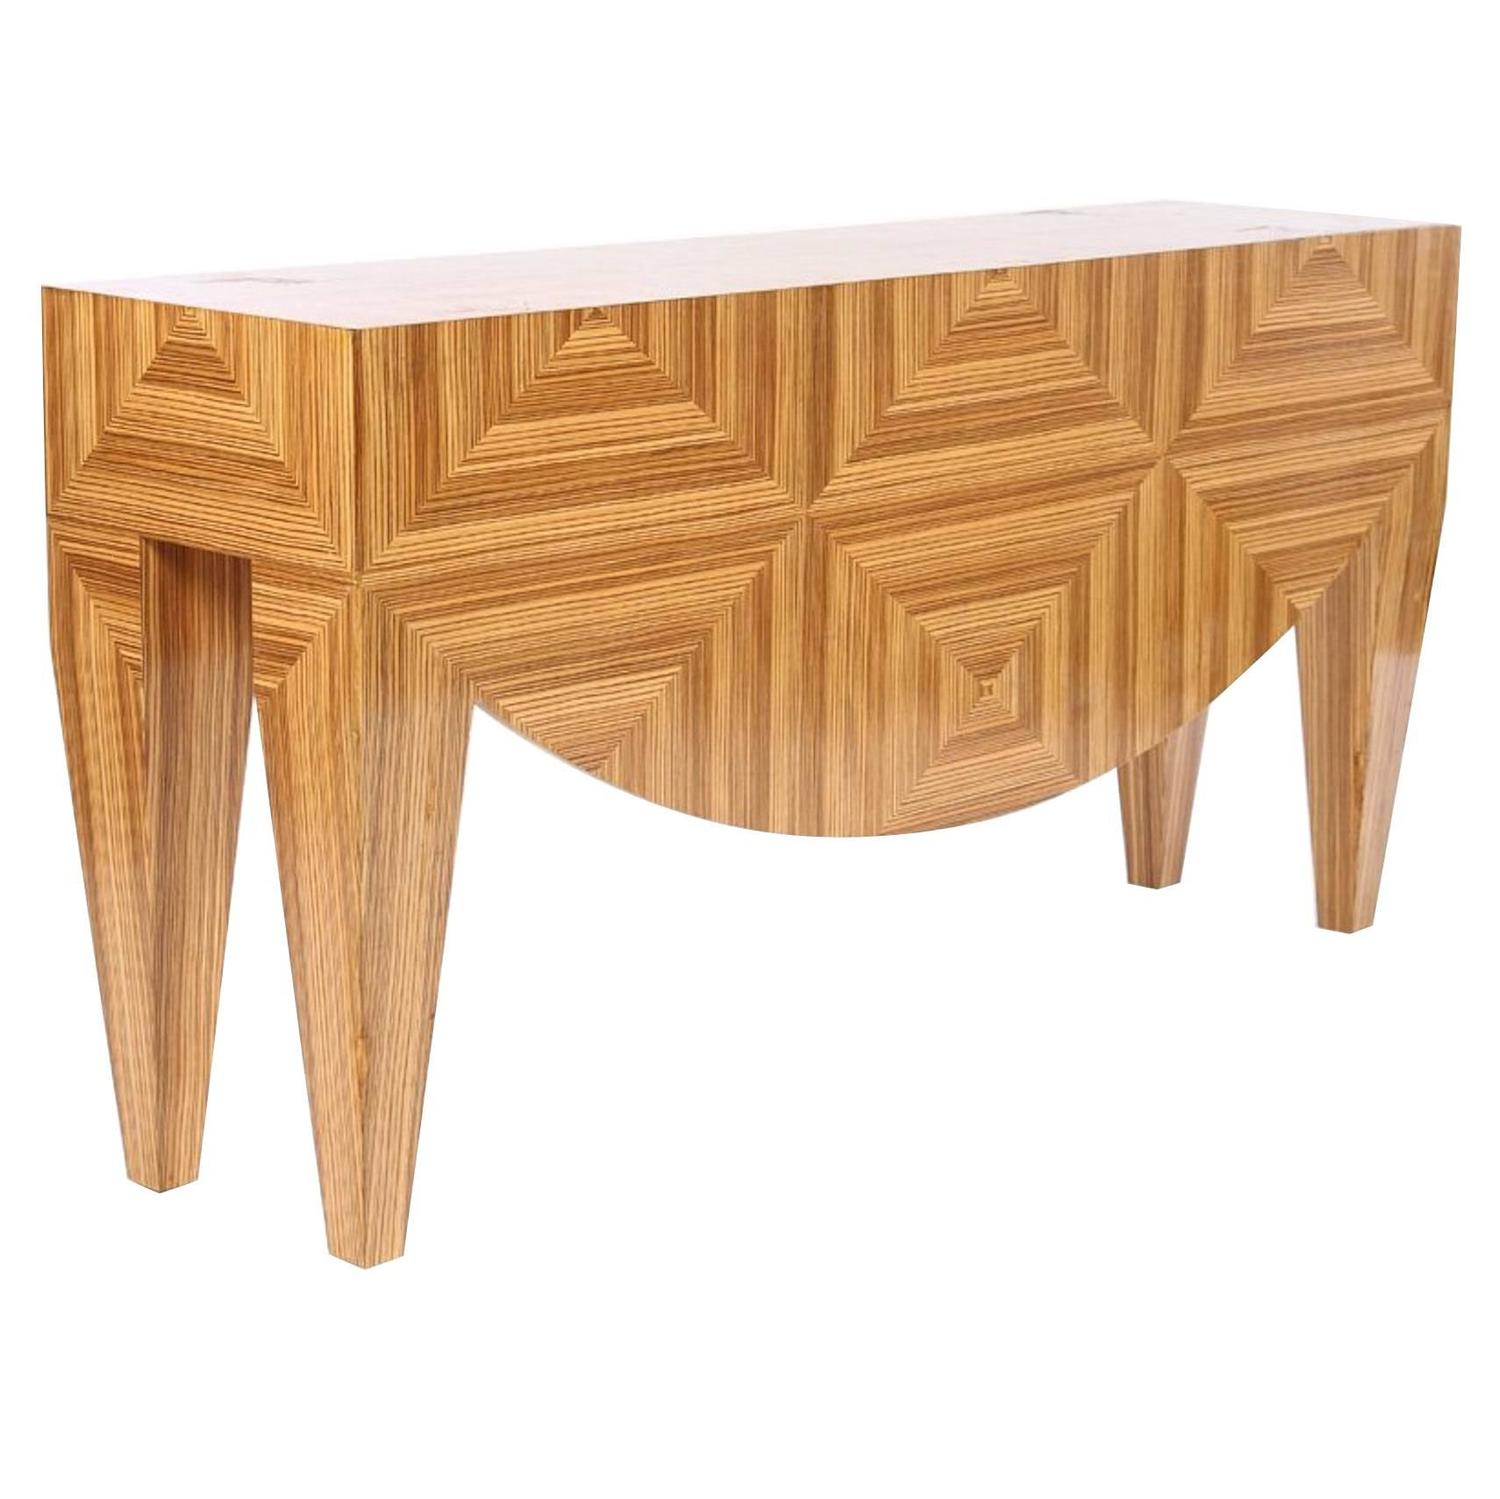 Post Modern Exotic Wood Console Table For Sale at 1stdibs